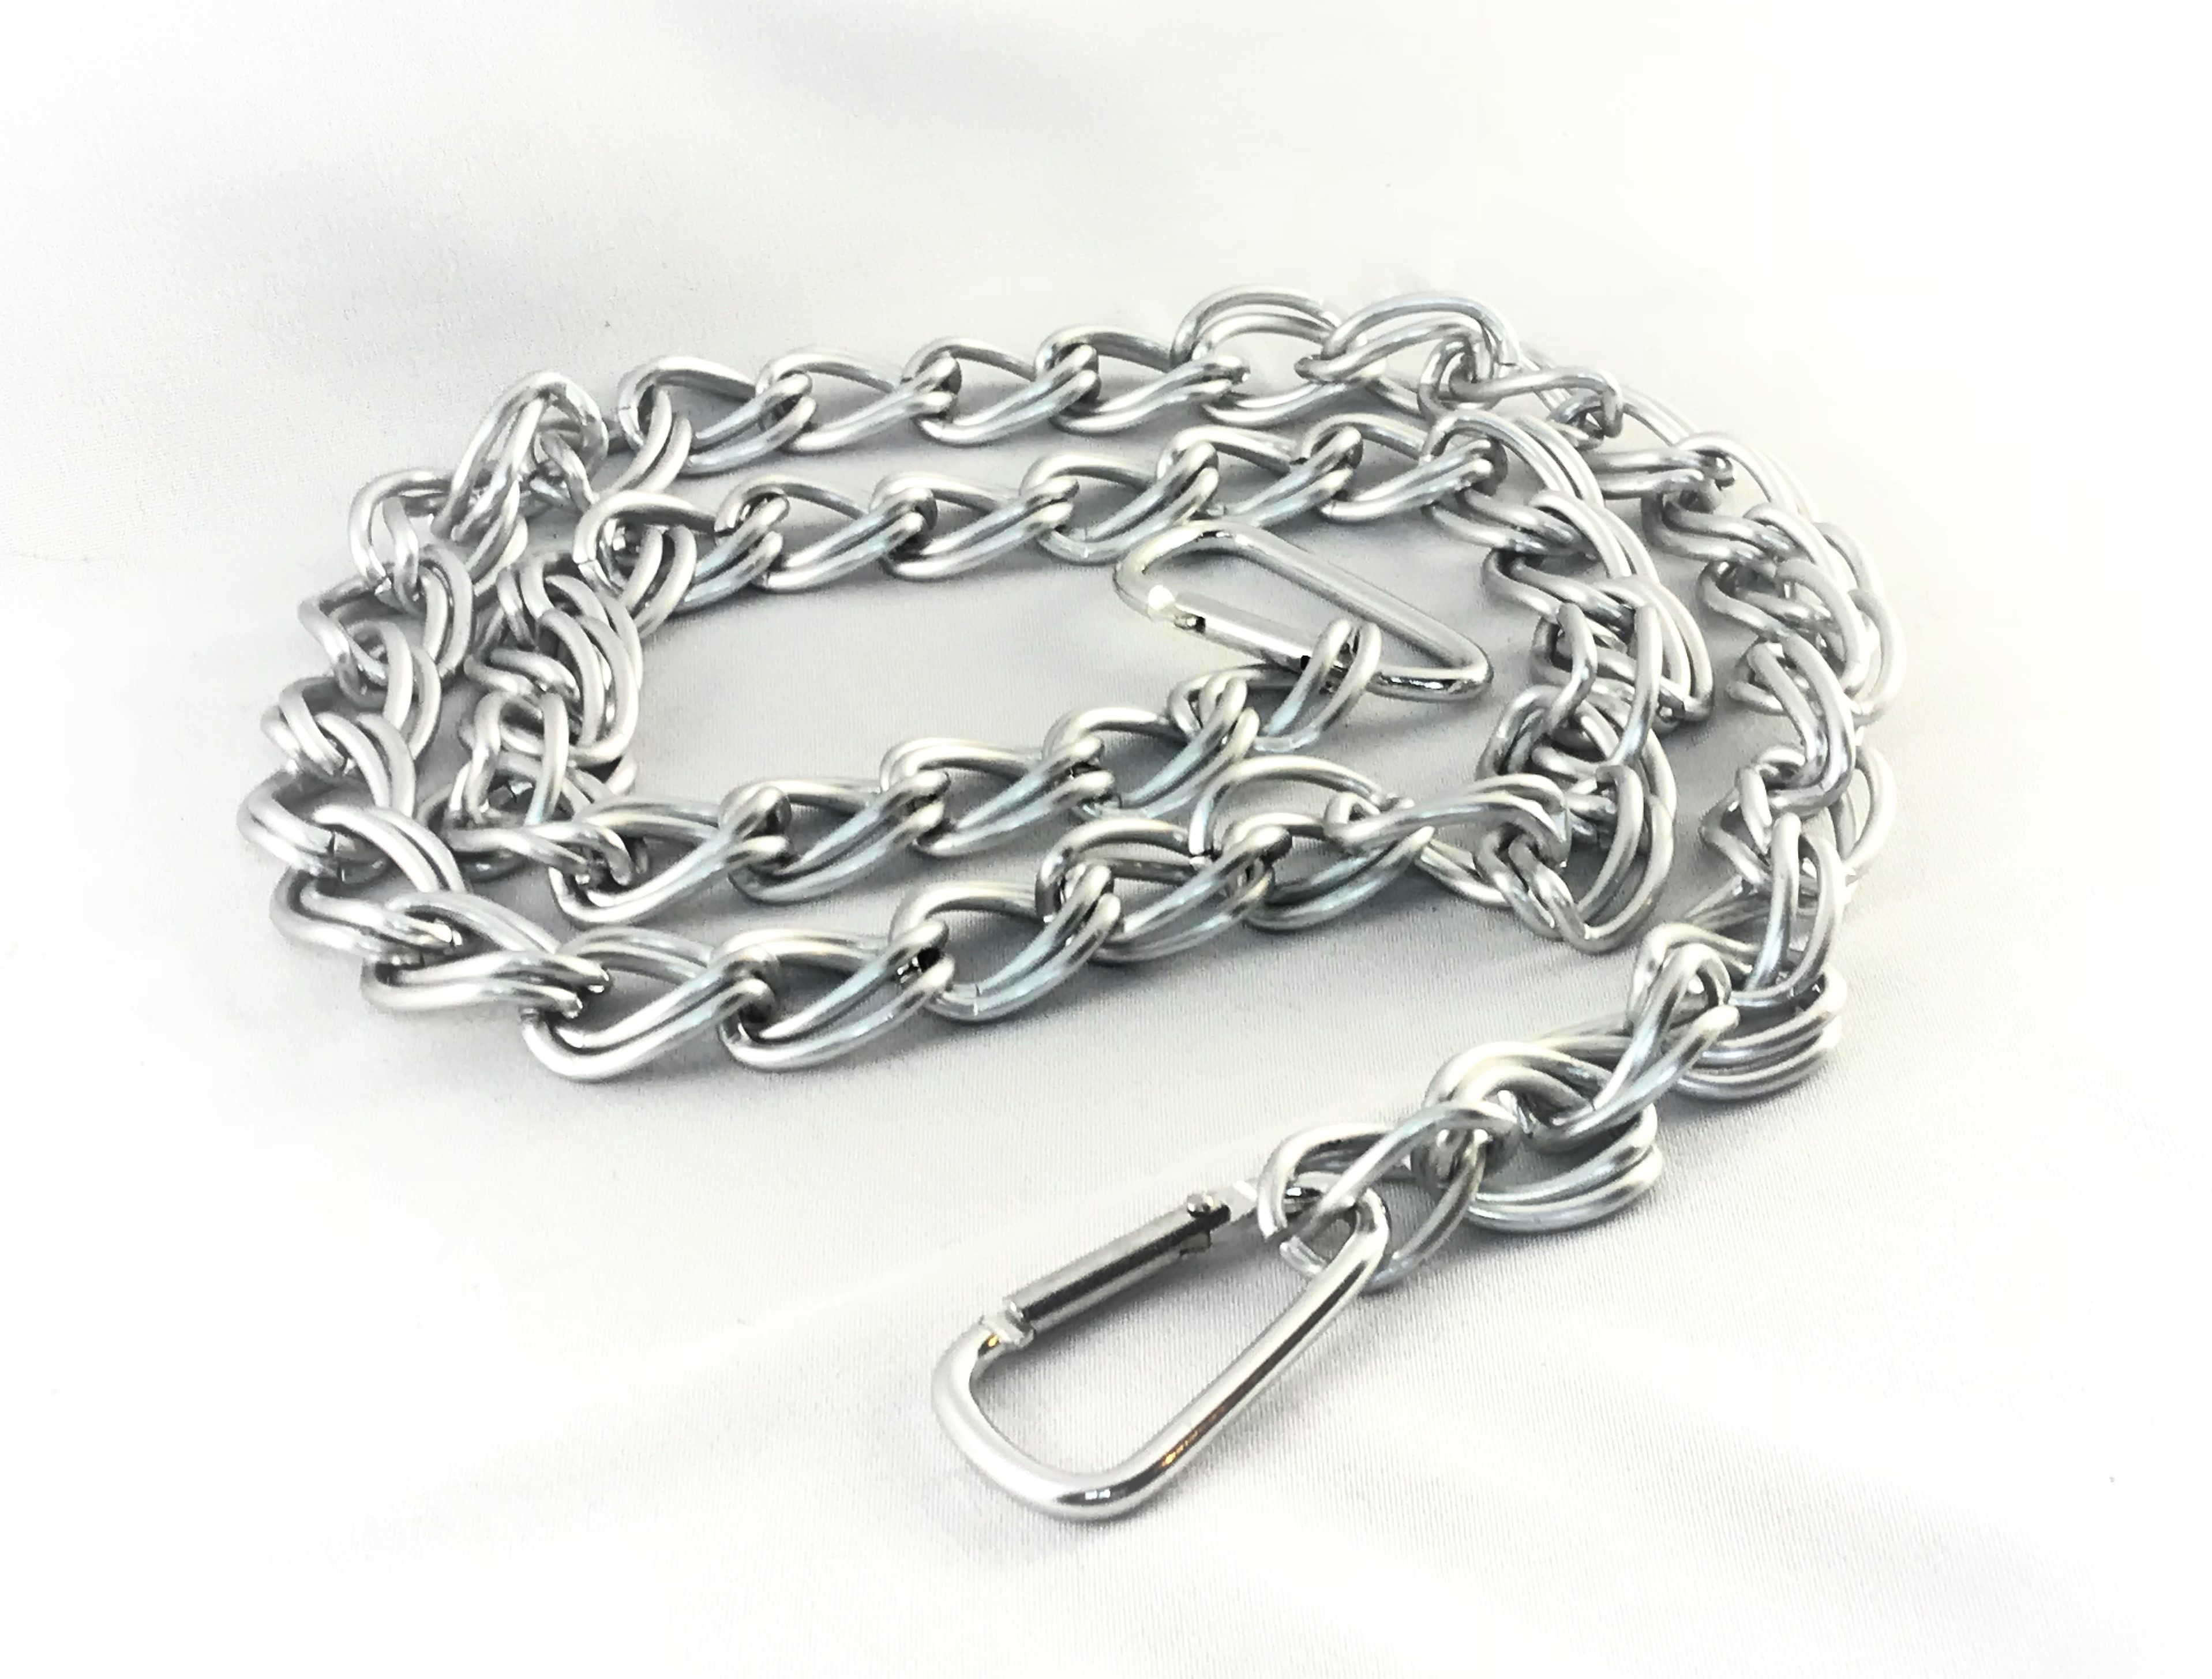 SILVER WITH CARABINER